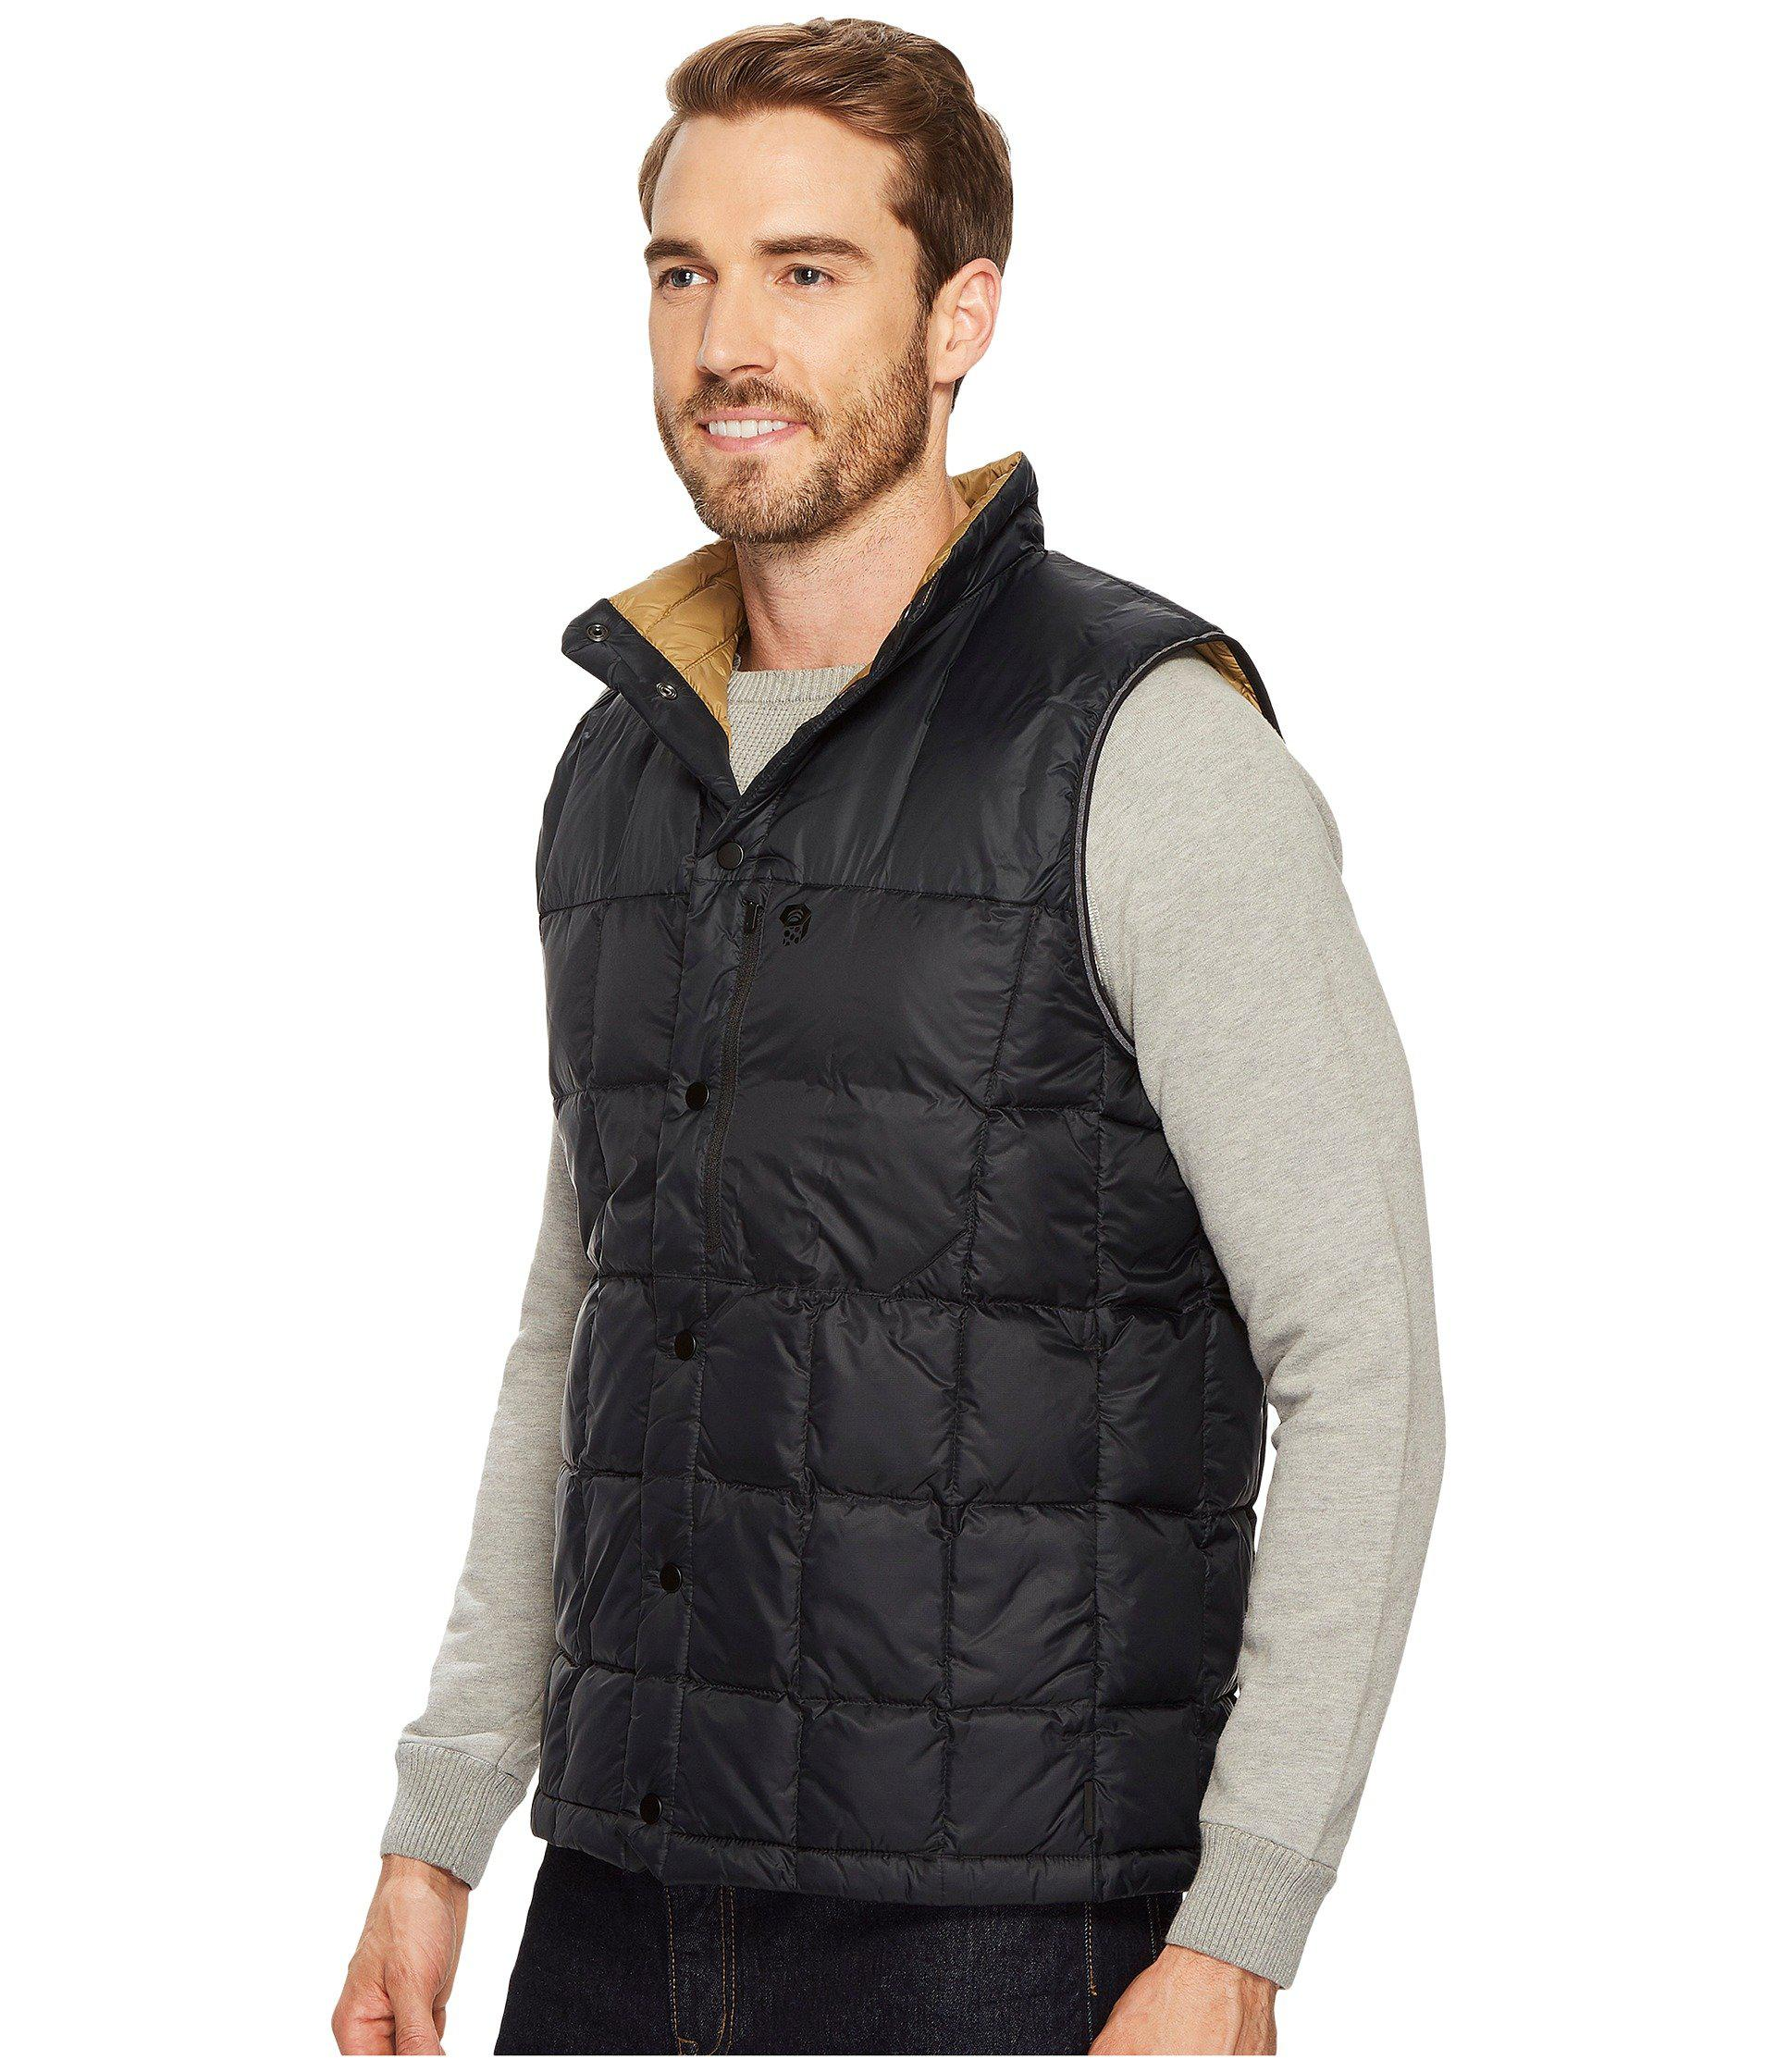 c234495aa Mountain Hardwear Packdown Vest (black) Vest for men